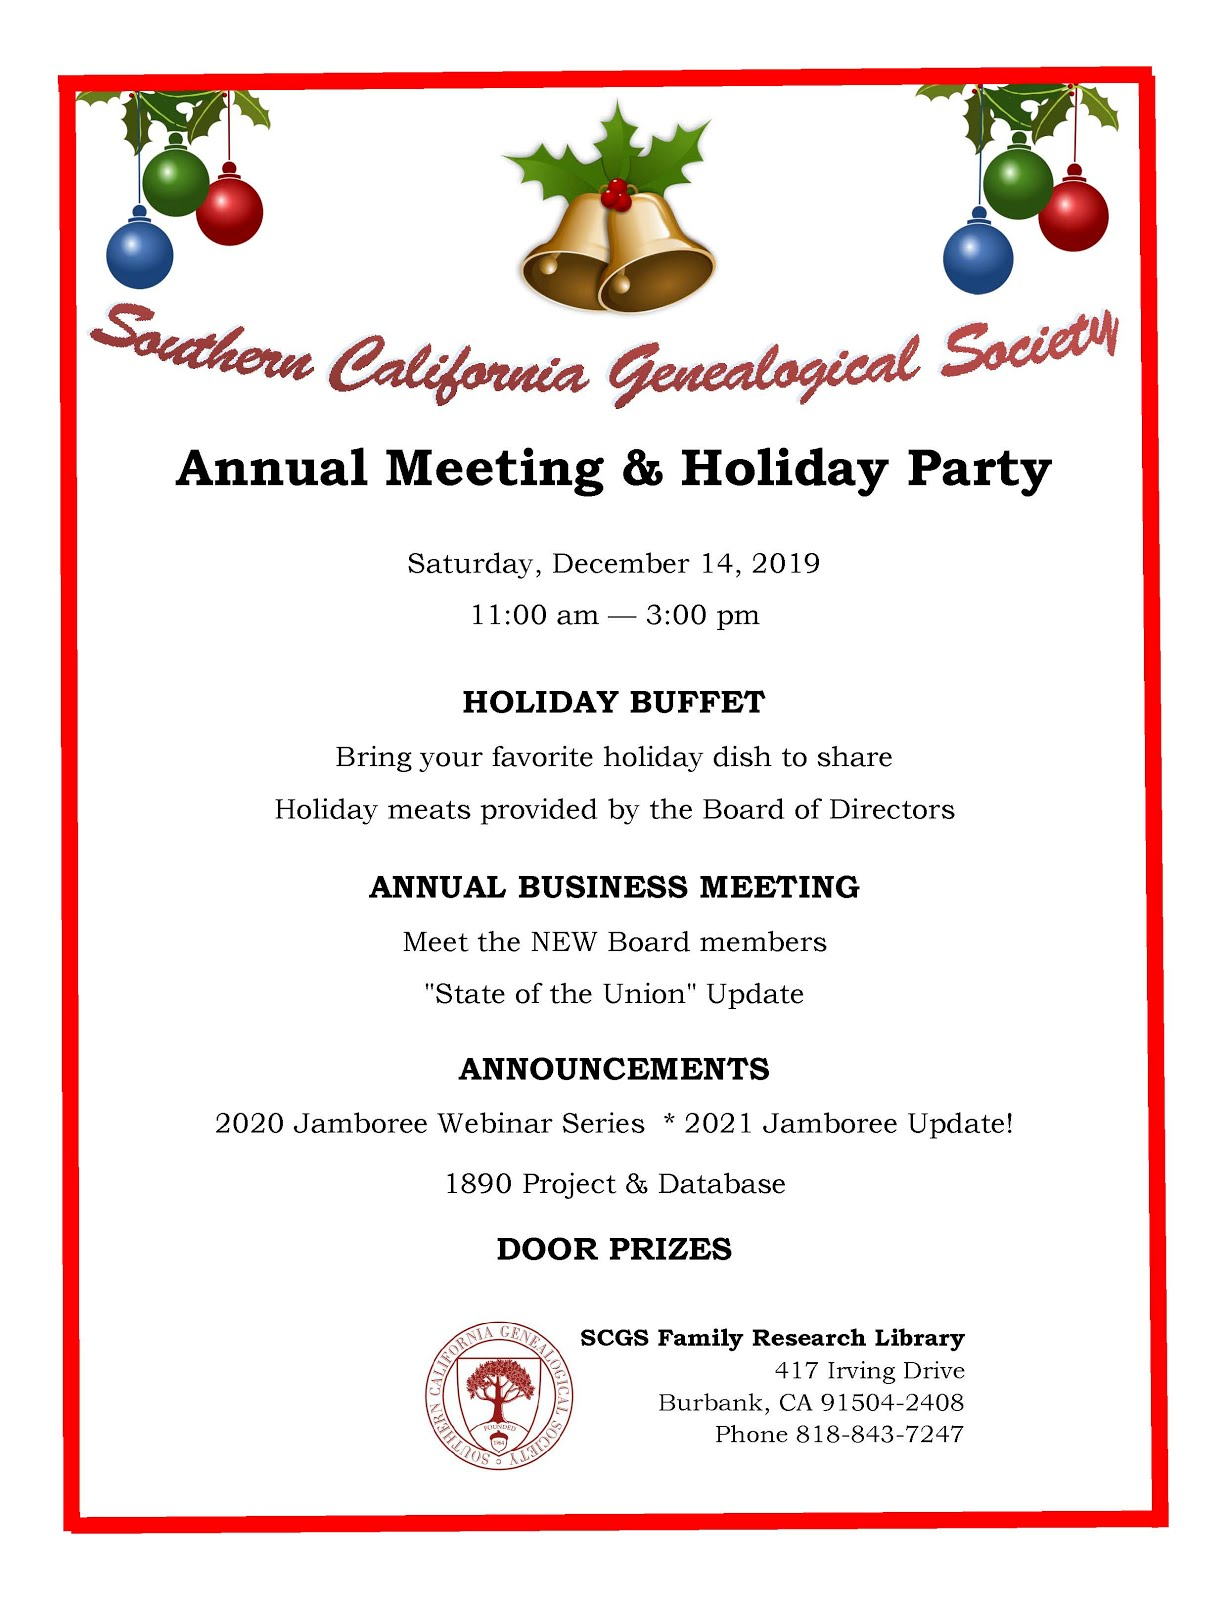 SCGS Annual Meeting & Holiday Party